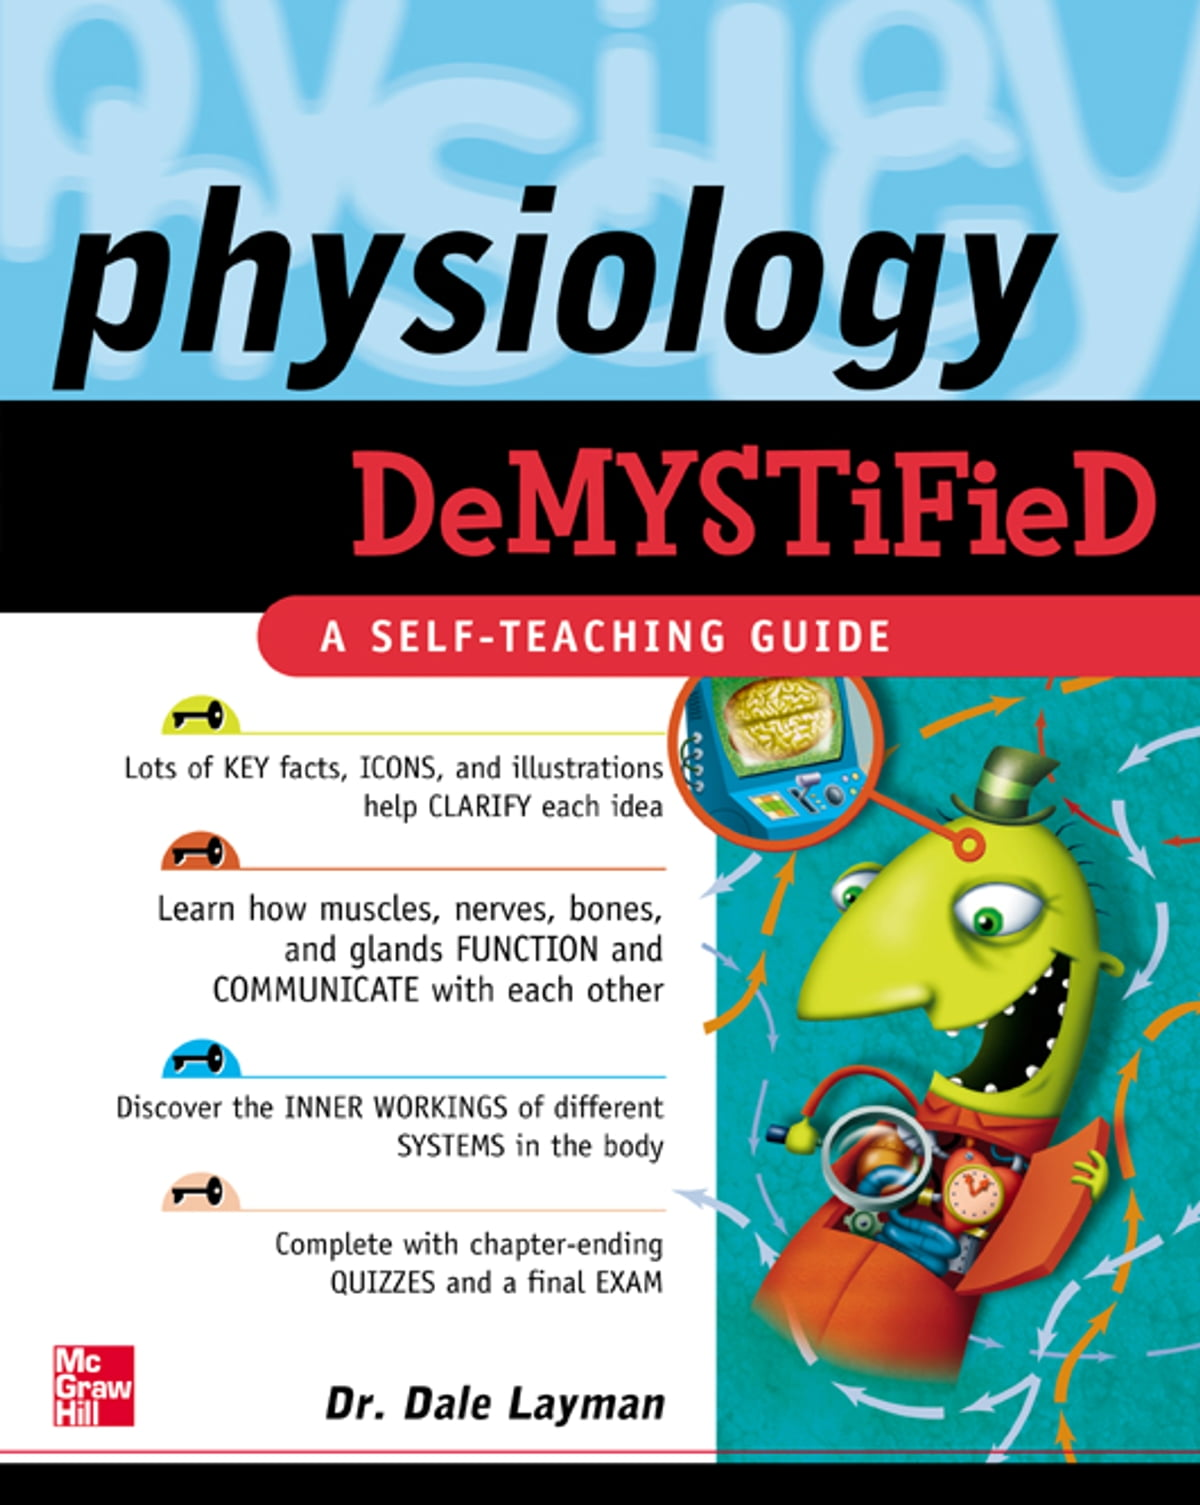 Physiology Demystified eBook by Dale Layman - 9780071471145 ...